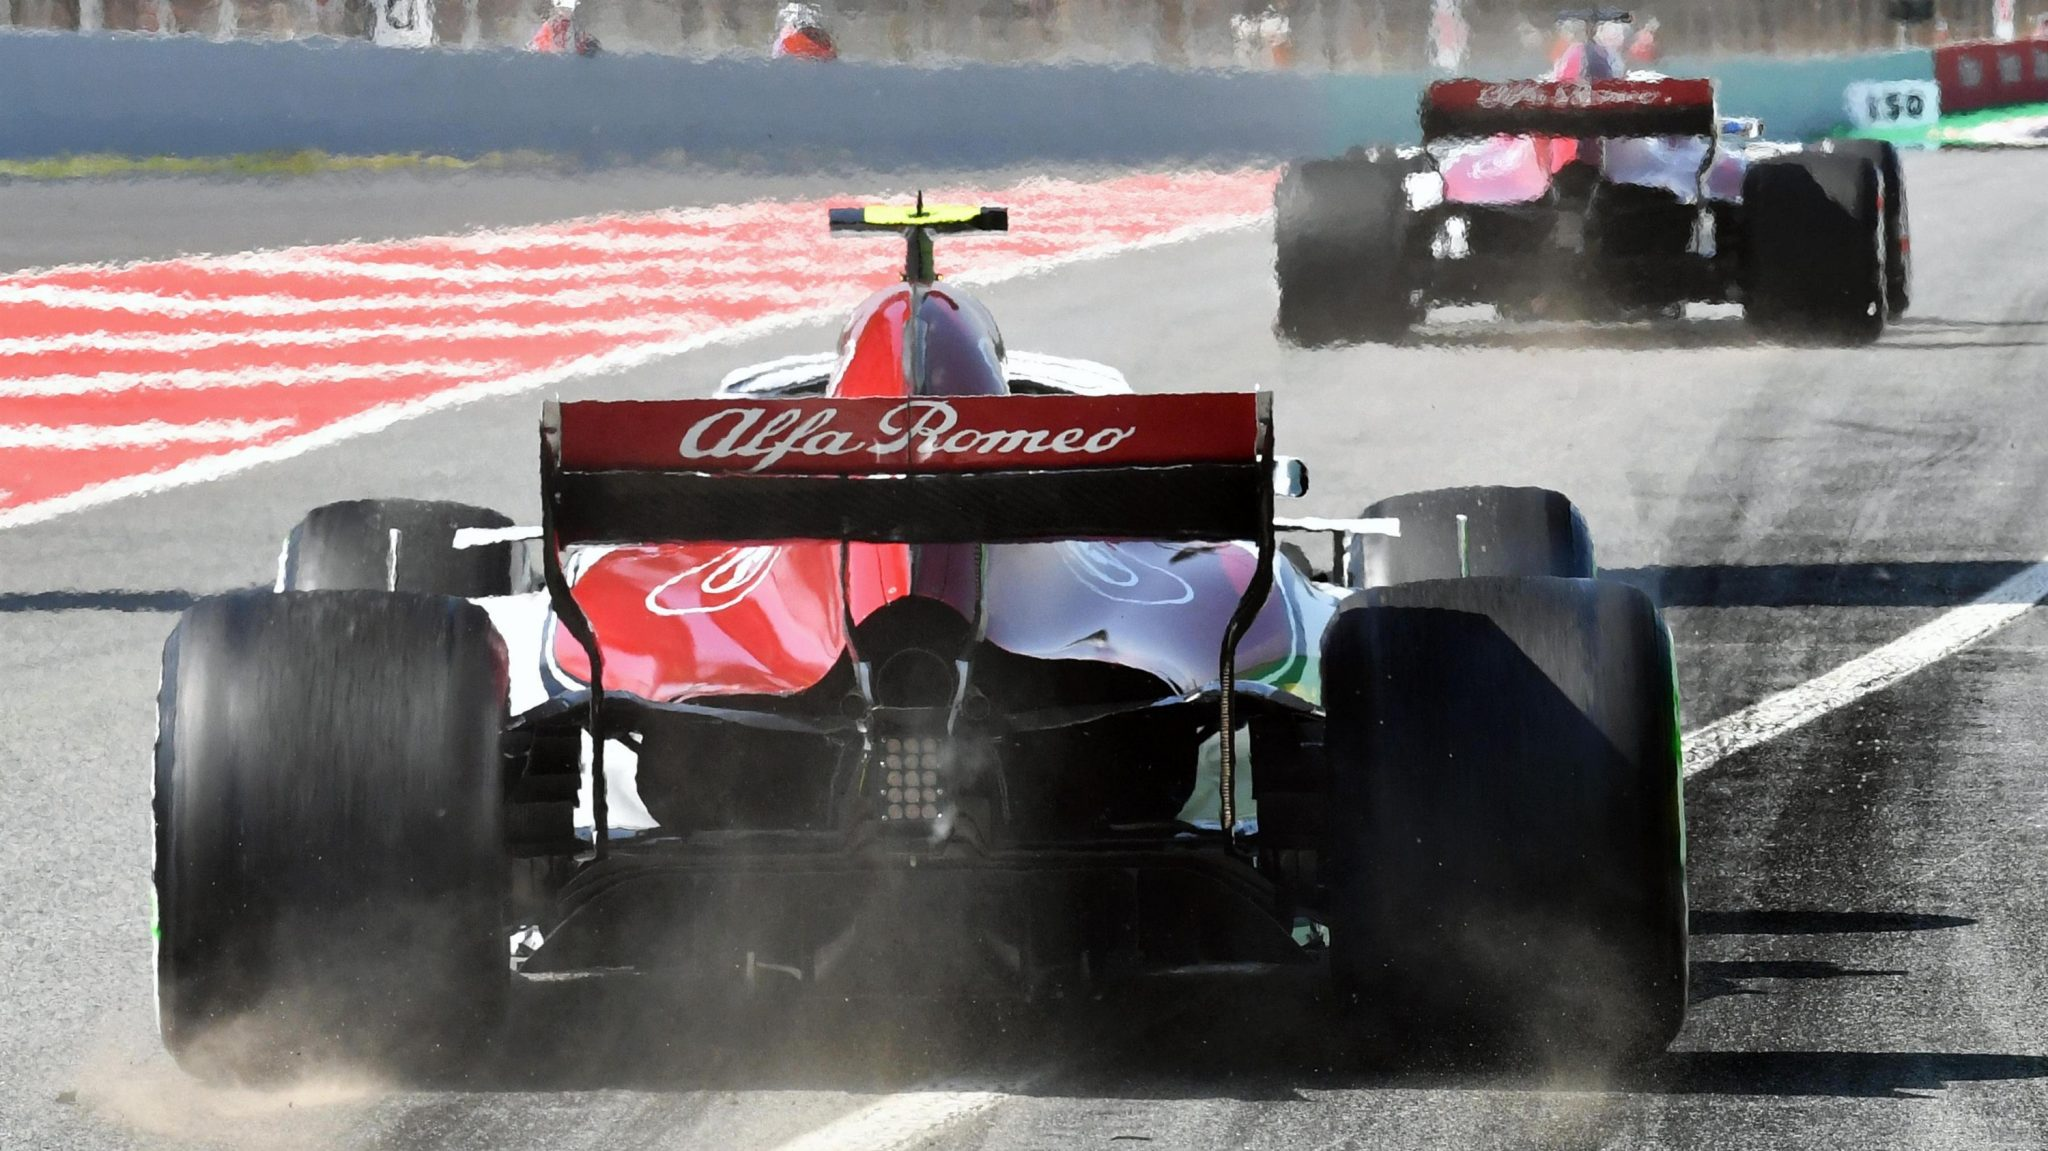 https://www.formula1.com/content/fom-website/en/latest/features/2018/5/gallery--the-best-images-from-friday-in-spain/_jcr_content/featureContent/manual_gallery/image29.img.2048.medium.jpg/1526042943997.jpg